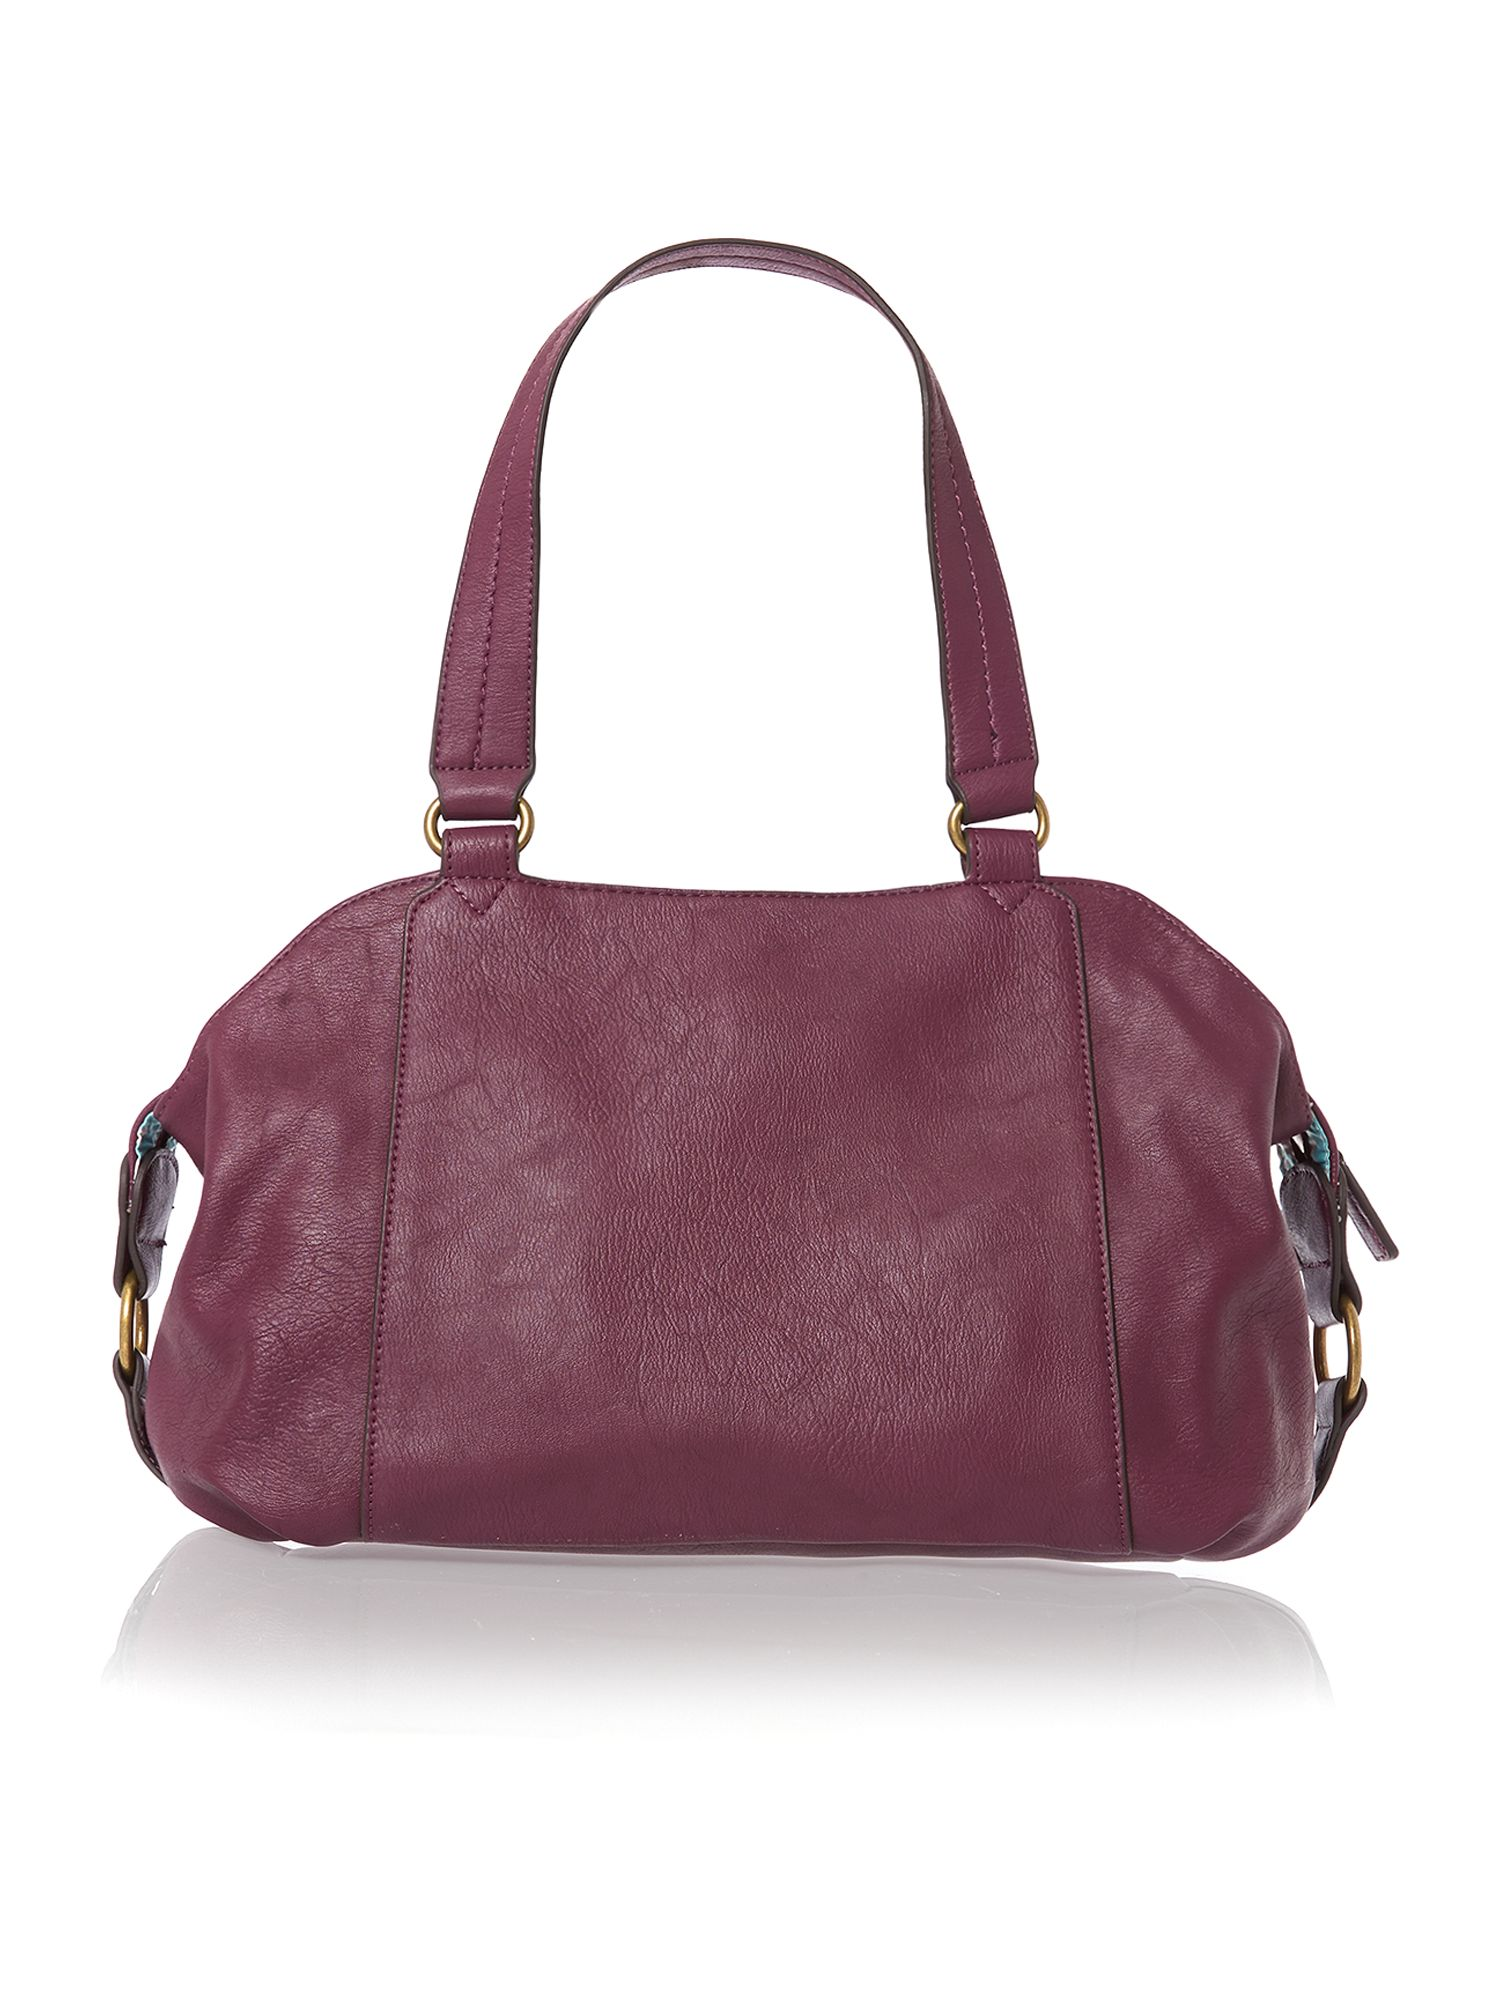 Judy purple tote bag